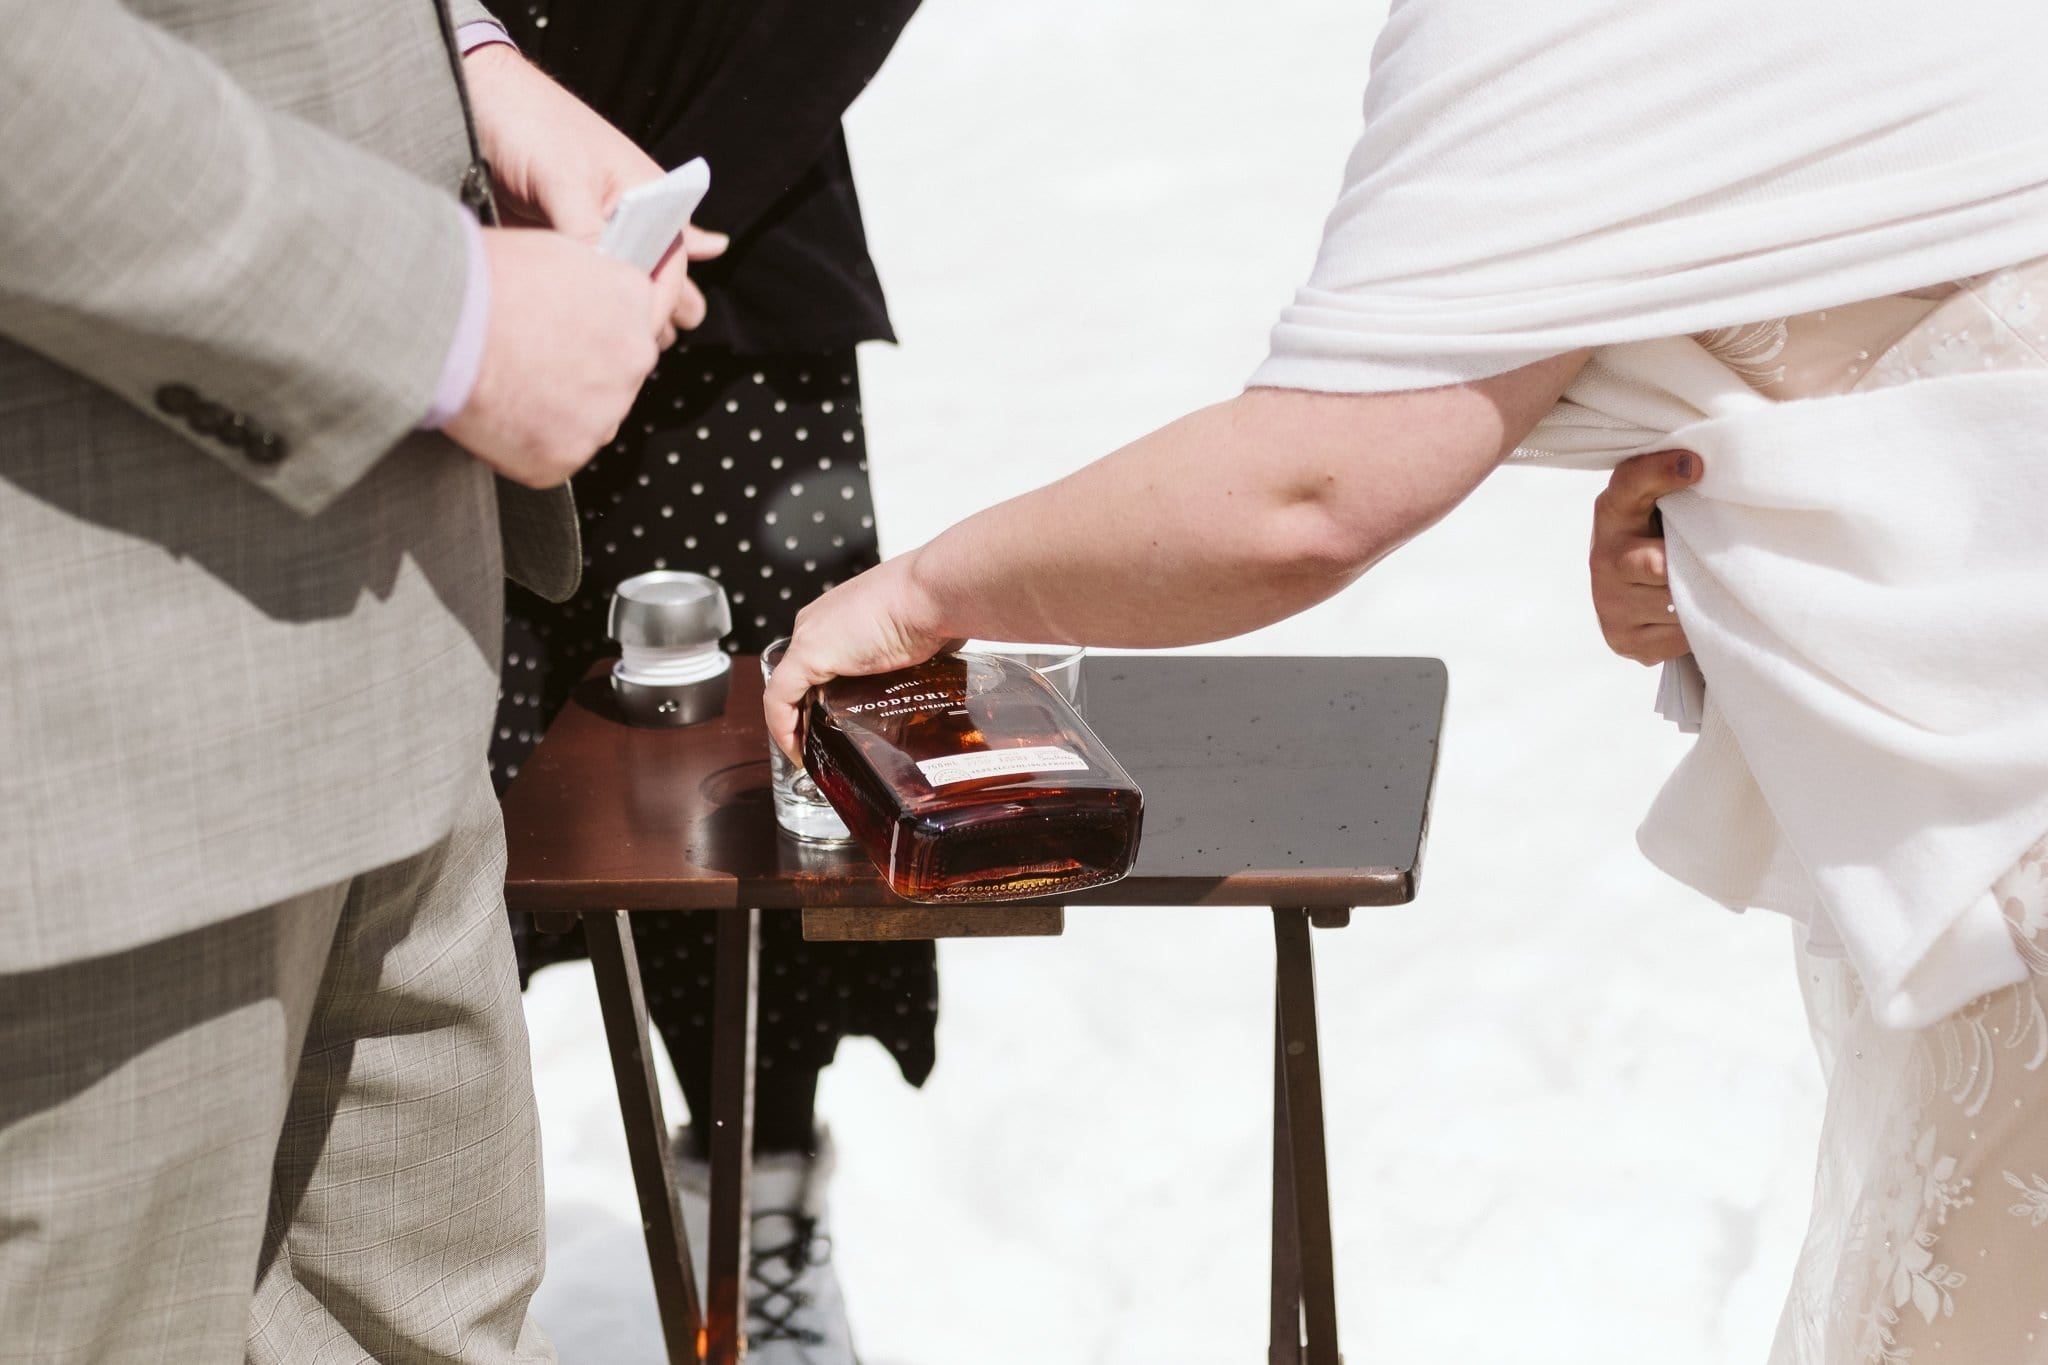 Bride pouring whiskey as part of elopement ceremony